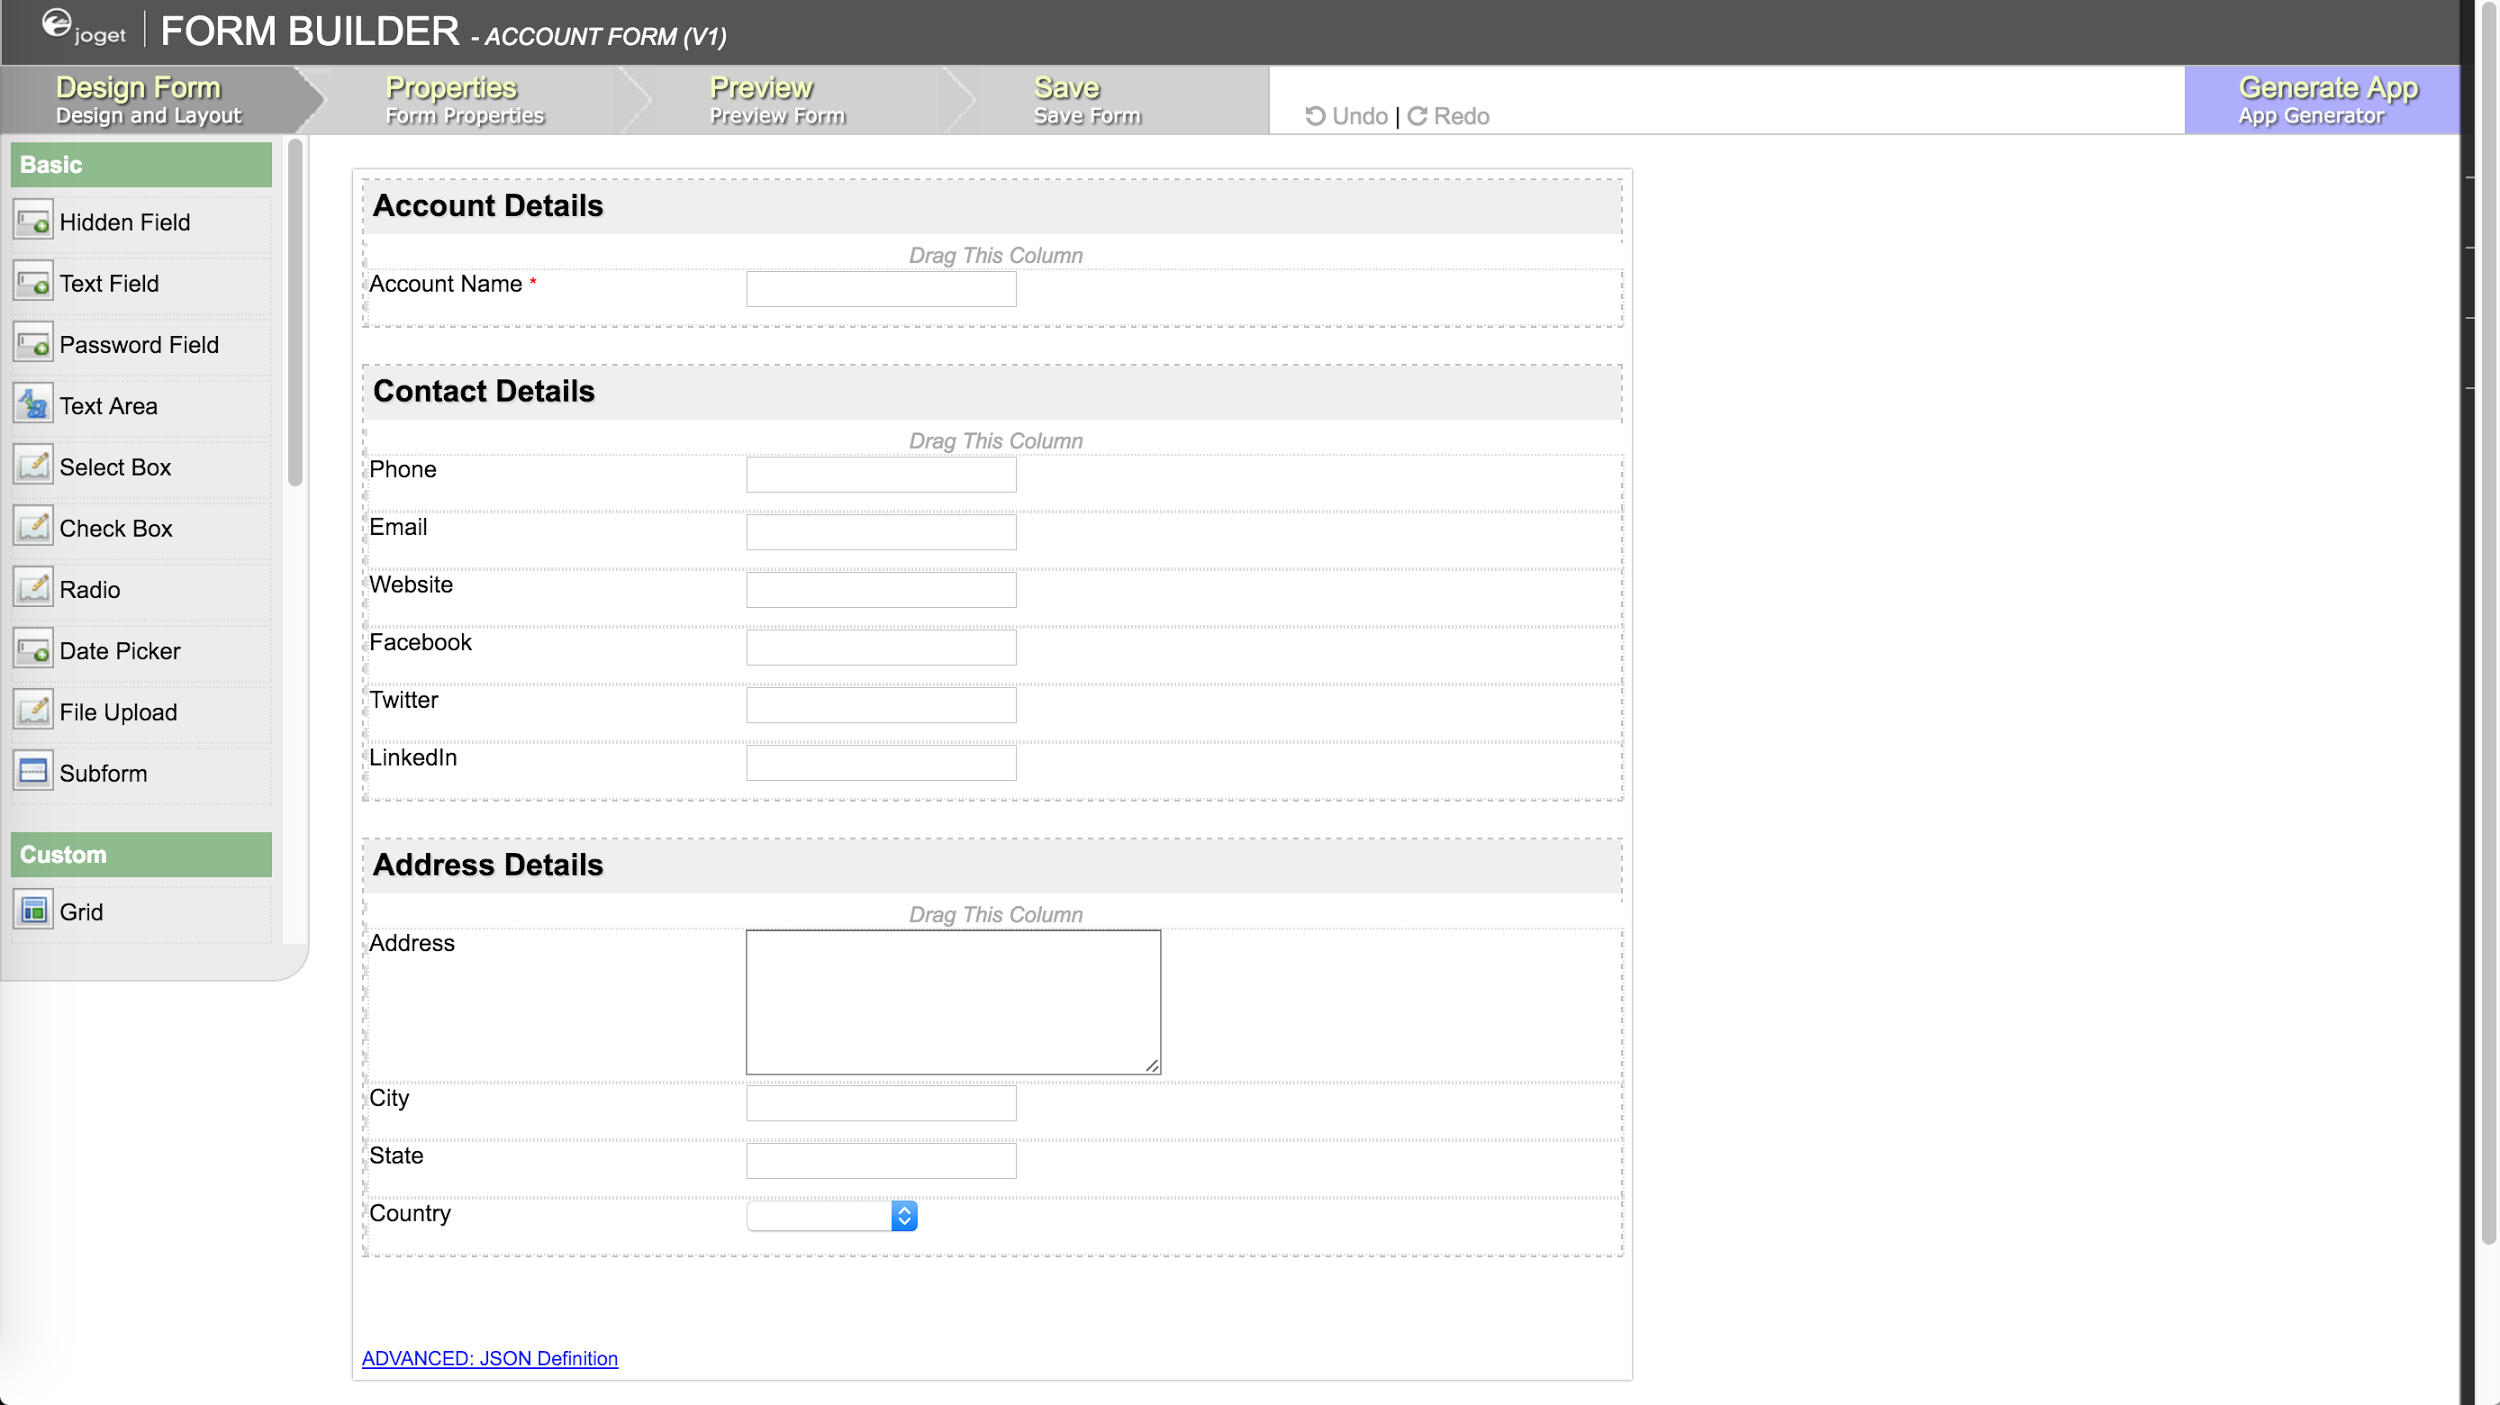 Joget Workflow Form Builder: Visually design forms with many available element.